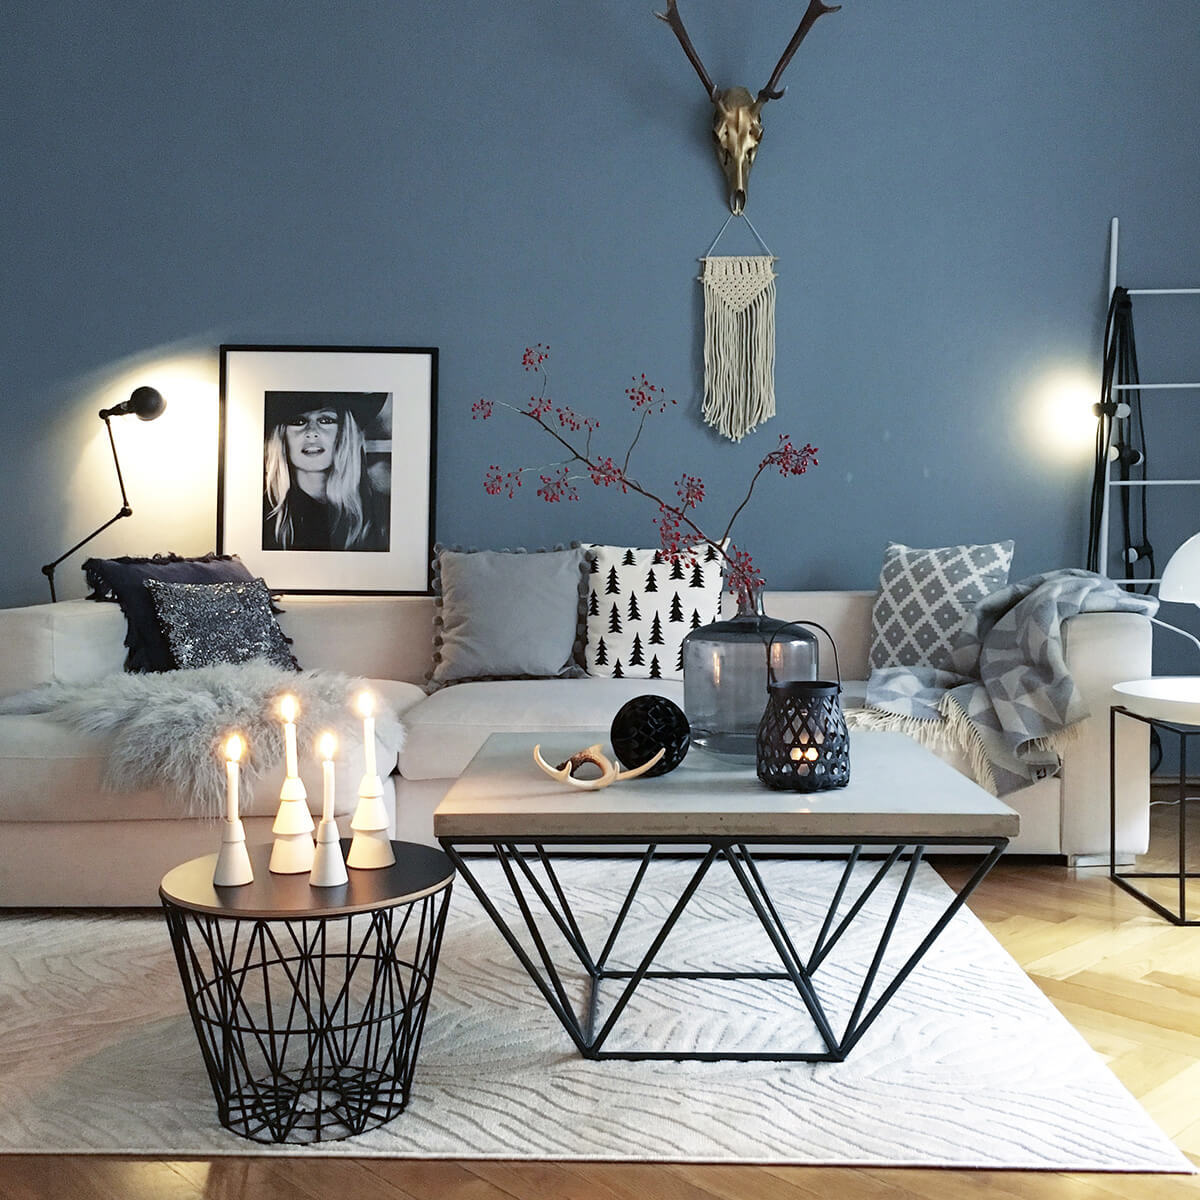 Unique Coffee Table Decor 37 Best Coffee Table Decorating Ideas And Designs For 2019